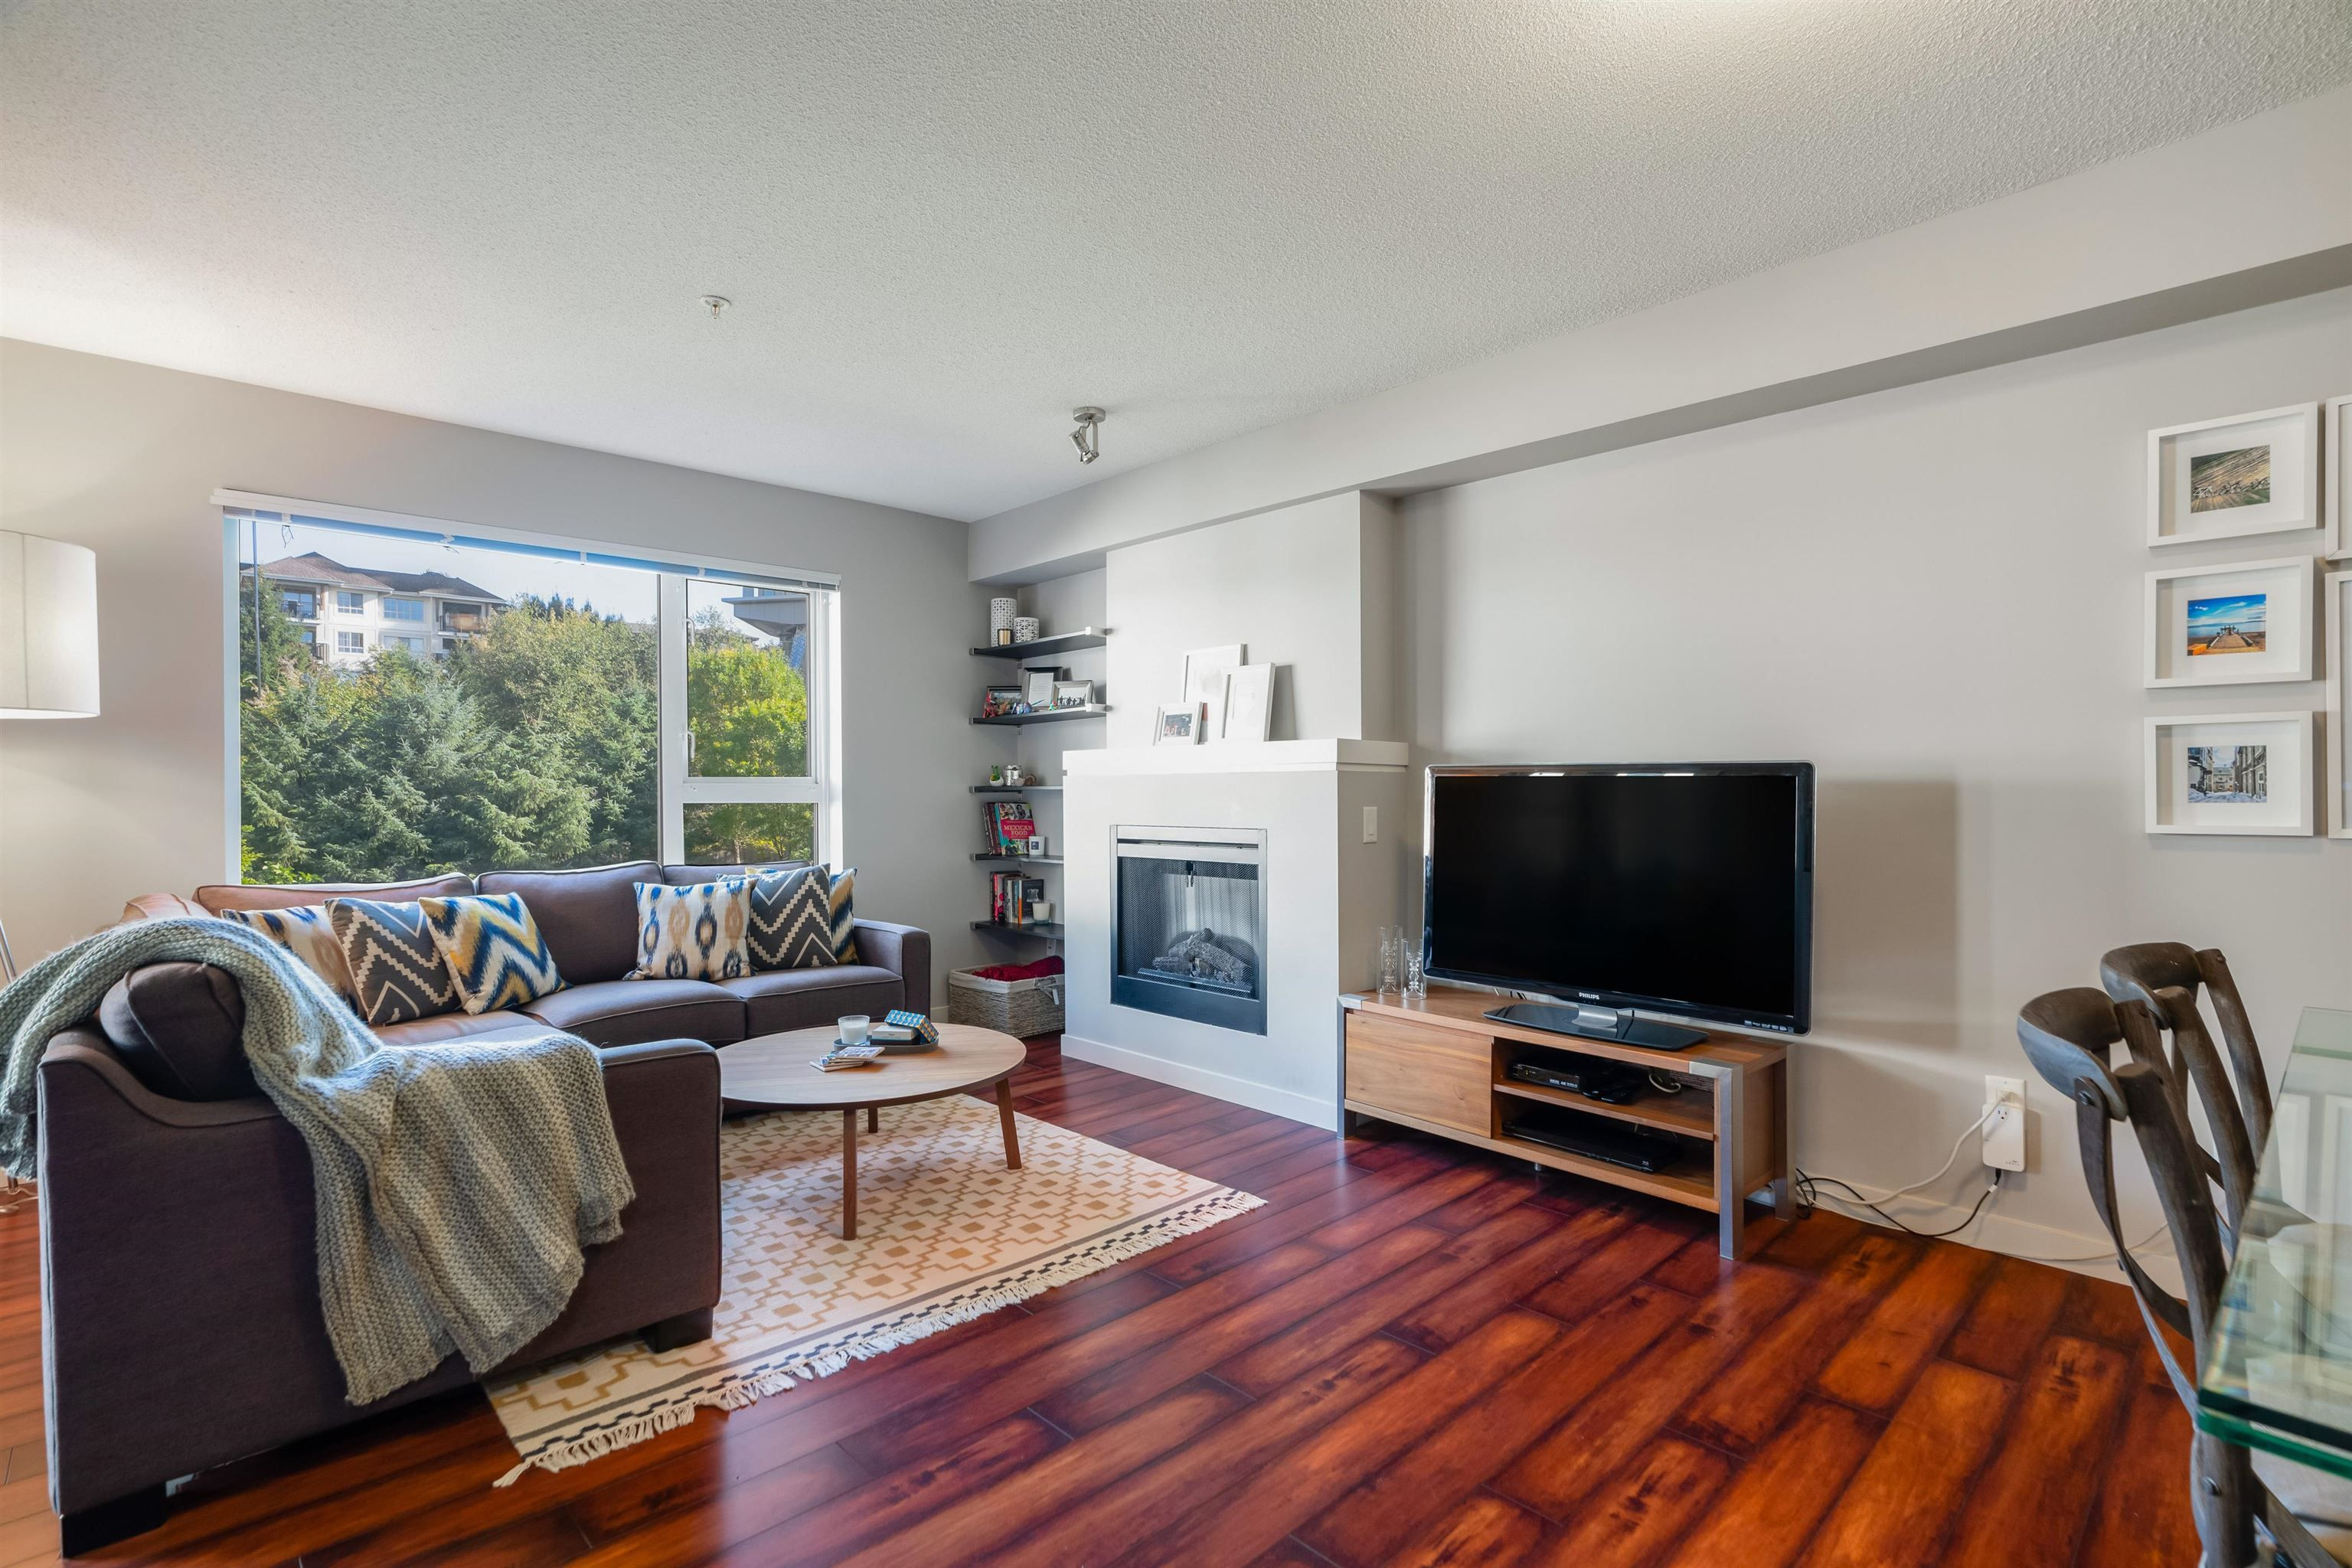 """Main Photo: 301 4723 DAWSON Street in Burnaby: Brentwood Park Condo for sale in """"COLLAGE"""" (Burnaby North)  : MLS®# R2619378"""